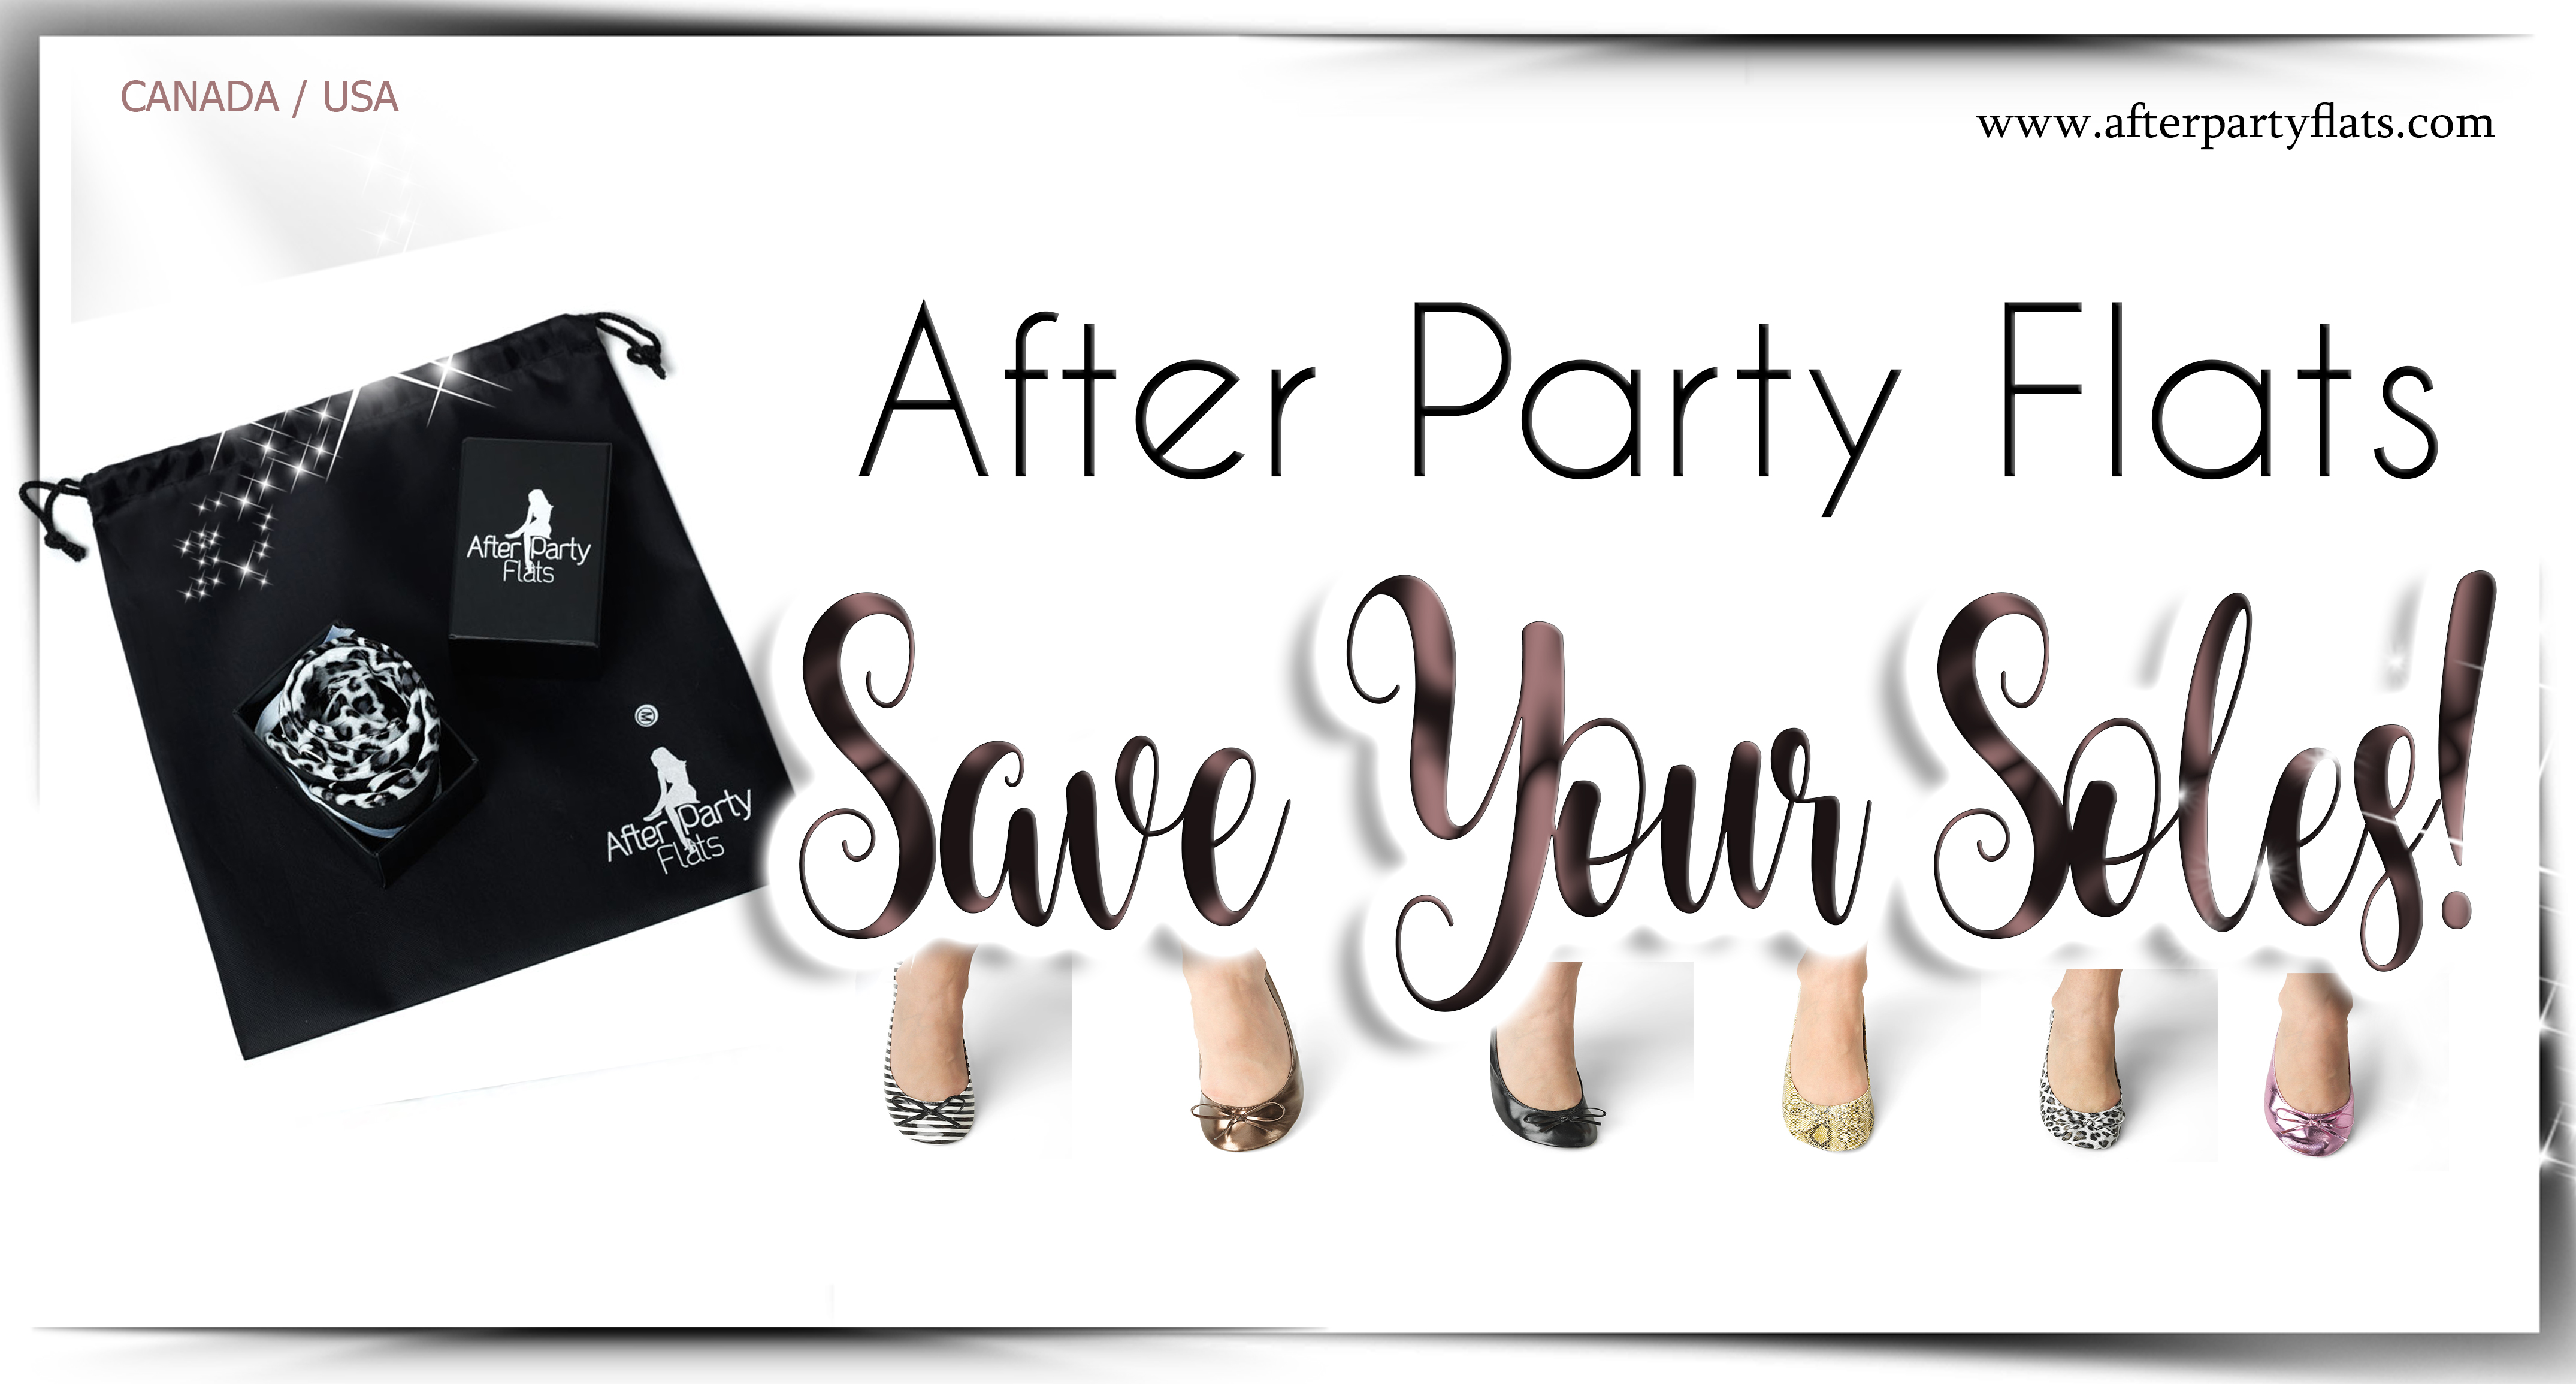 AFTER PARTY FLATS FB COVER PLAIN SHOES 5